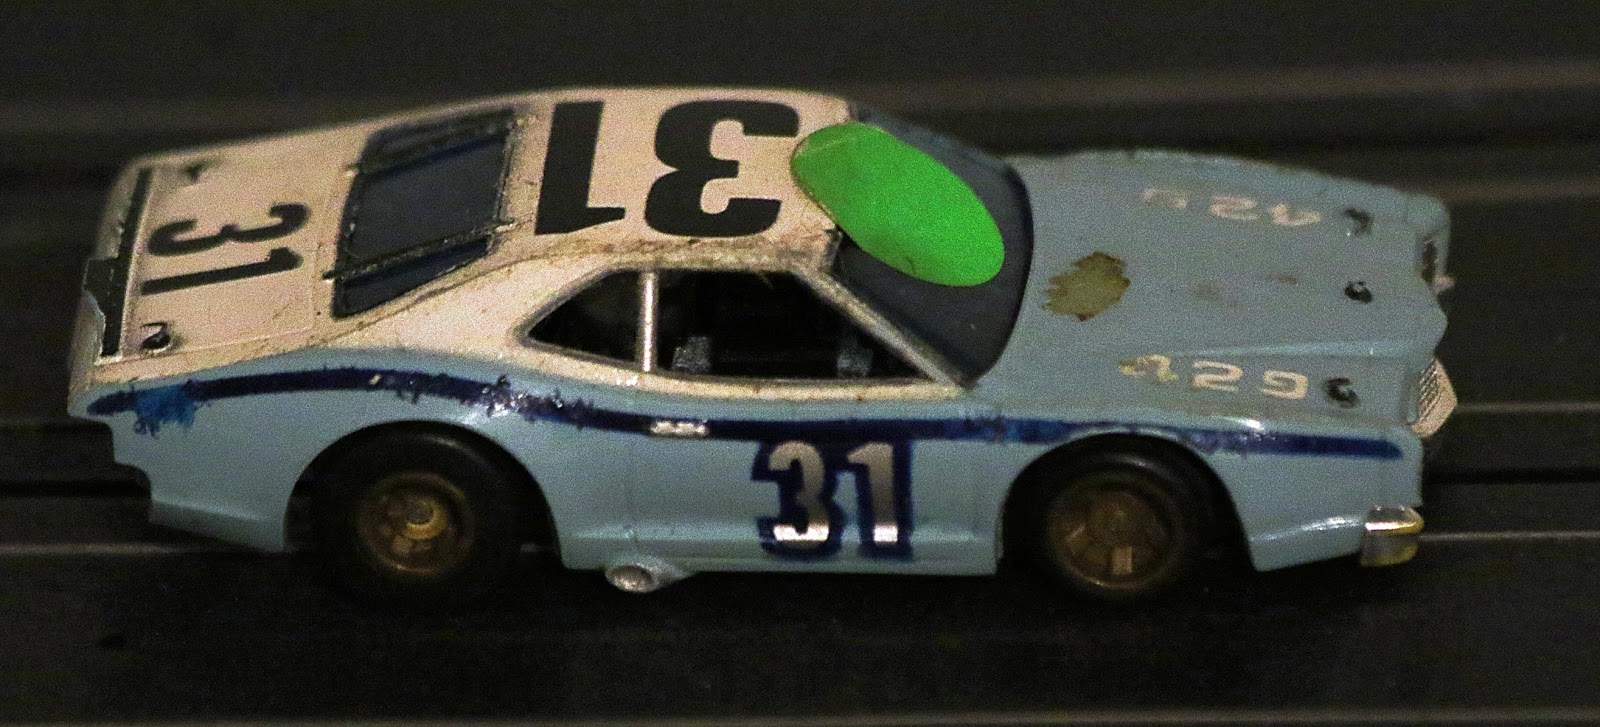 Rouen Les Afx 64 Memories Of Ho Scale English National Slot Car Racing Life Like Rokar Chassis Repair Parts And Diagrams Winning At The Stourbridge Daytona Tri Oval